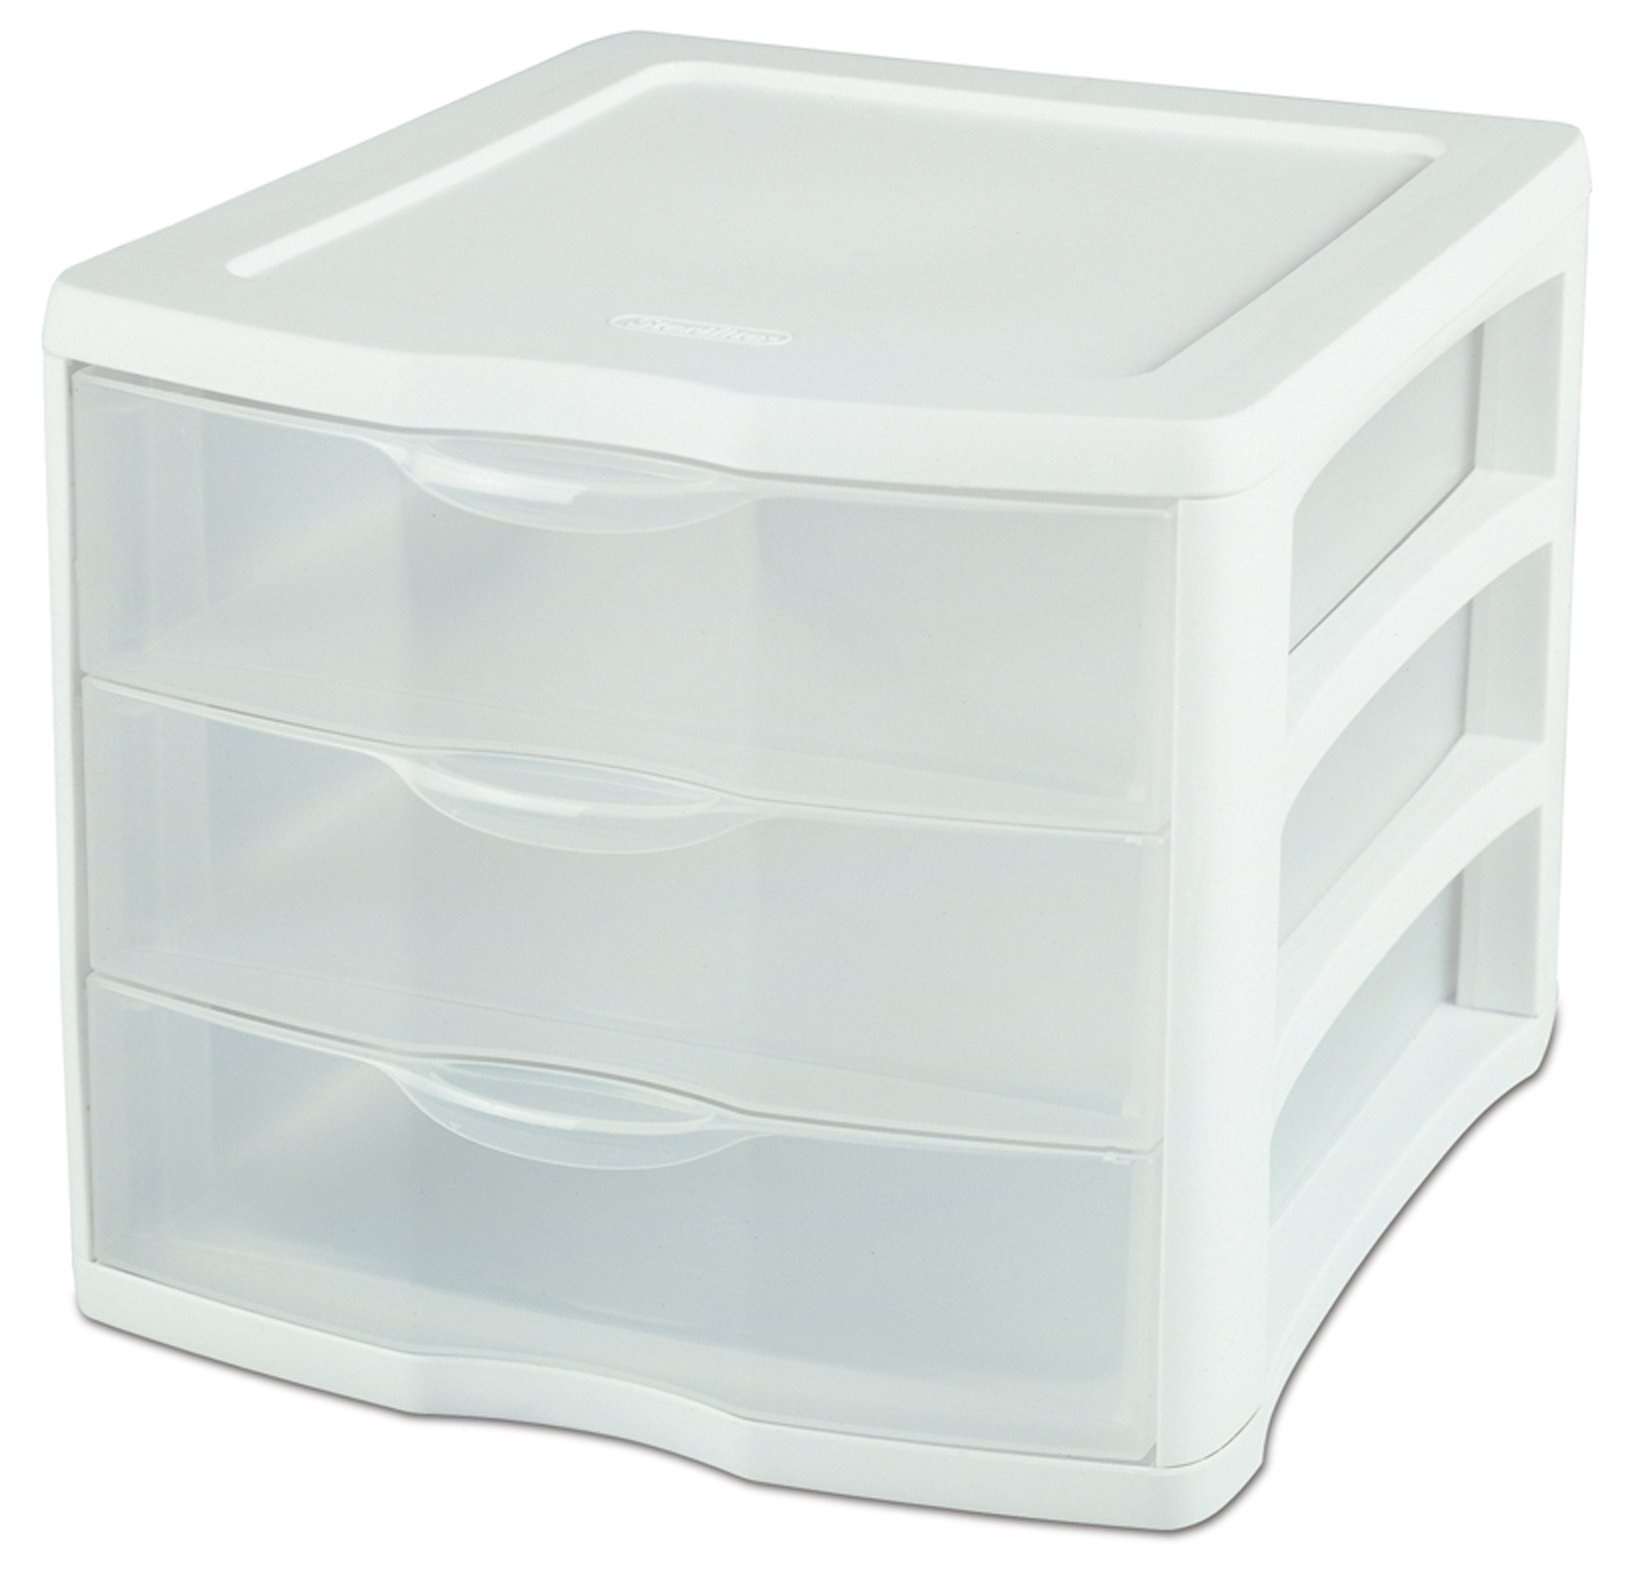 cabinets plastic storage clear akro metal crafts w tool drawer drawers stylish mils cabinet vintage